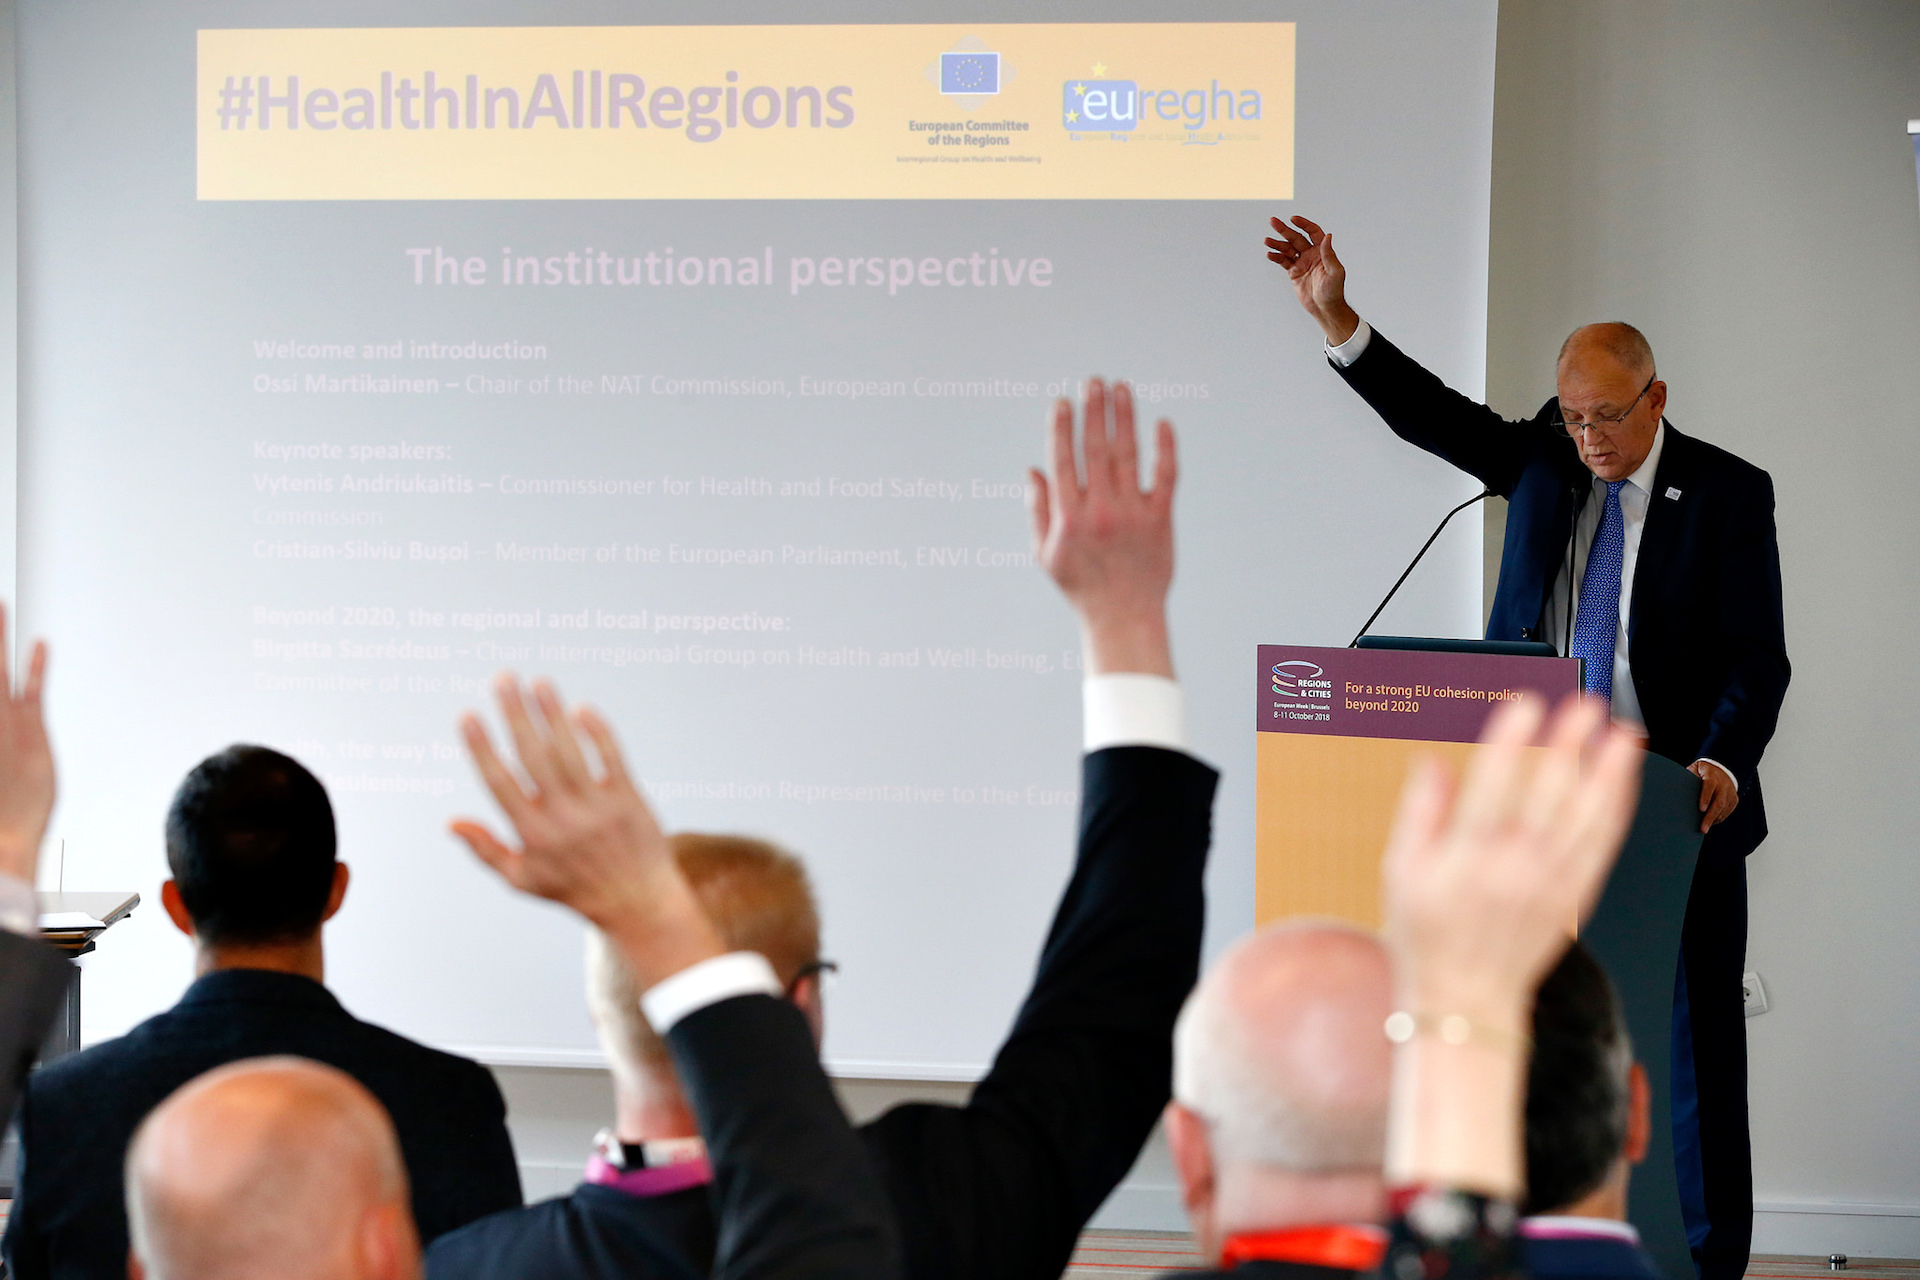 Global Challenges, Territorial Answers: the Future of Health in Europe - Event organised by EUREGHA on behalf of the Committee of the Region's Interregional Group on Health and Well-being